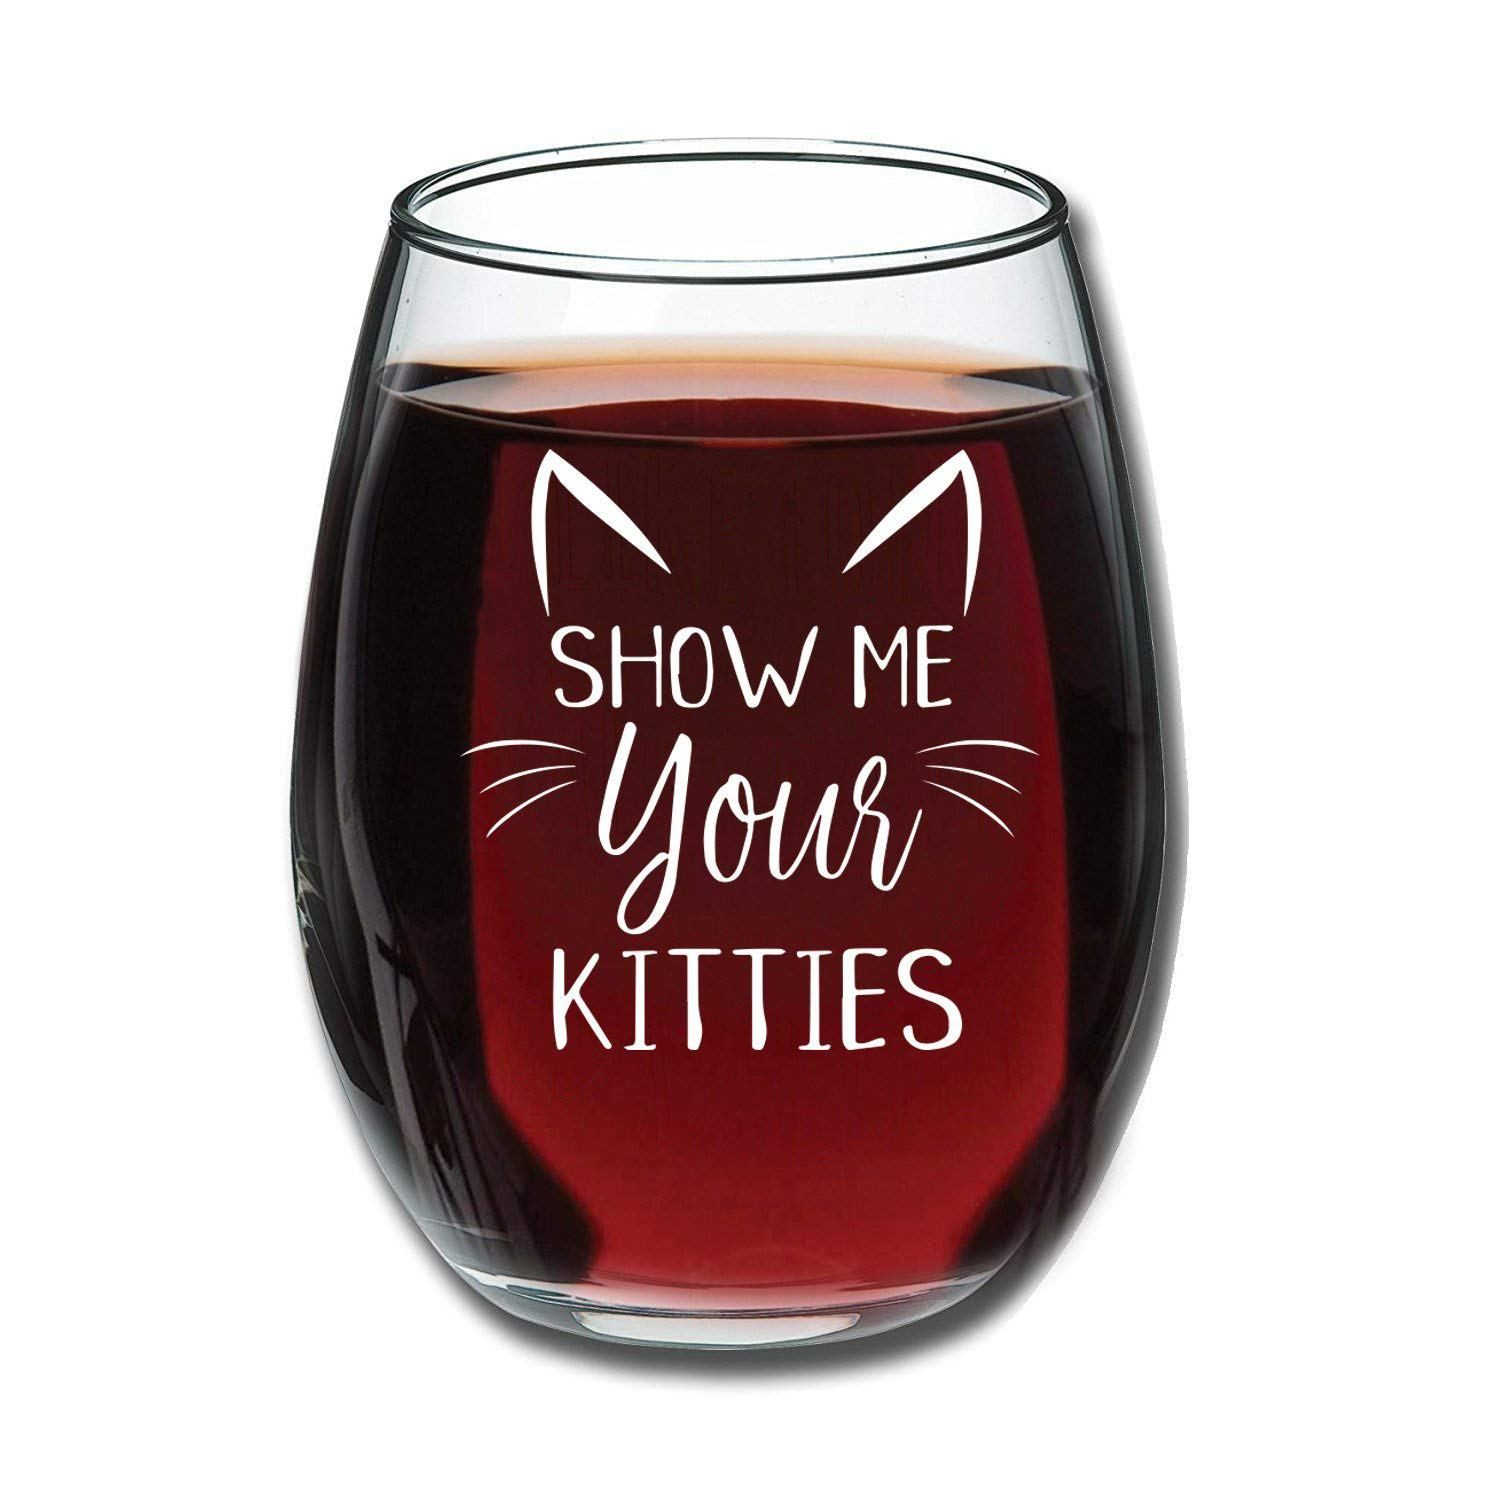 Show Me Your Kitties Wine Glass Gift Guru Gal Funny Wine Glass Gifts For Wine Lovers Unique Gifts For Mom